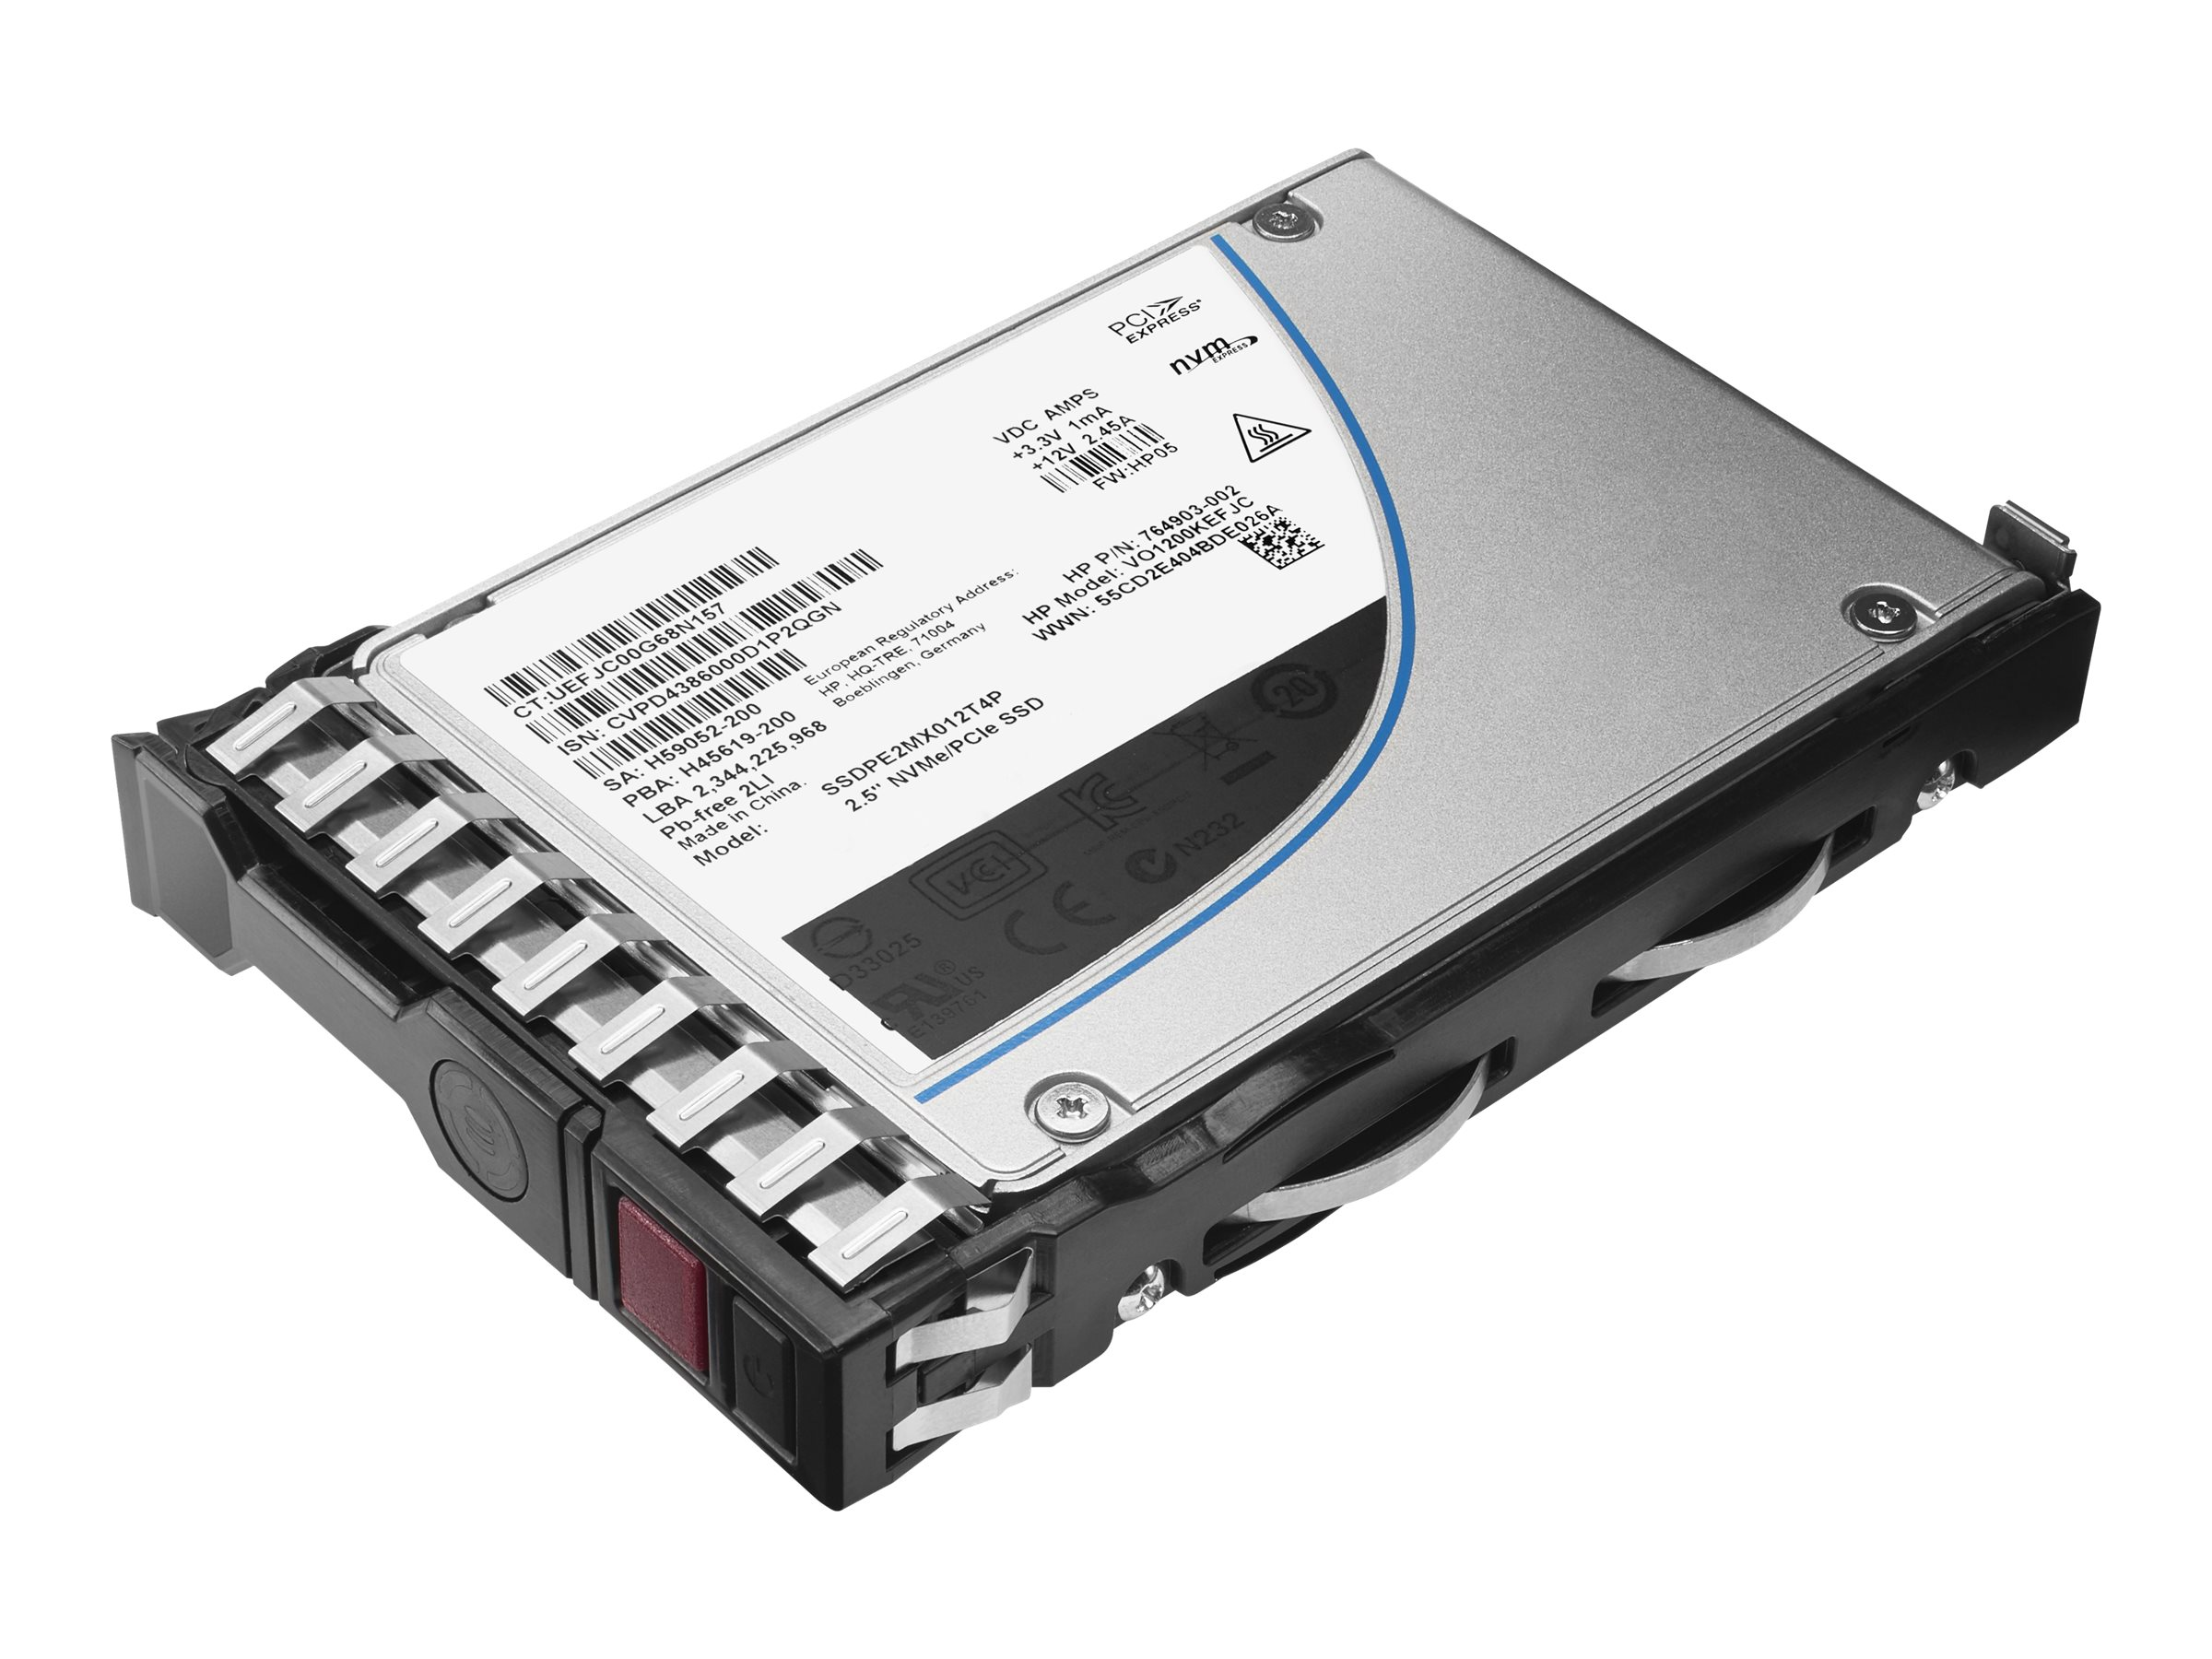 HPE Mixed Use-2 - Solid-State-Disk - 800 GB - Hot-Swap - 6.4 cm SFF (2.5